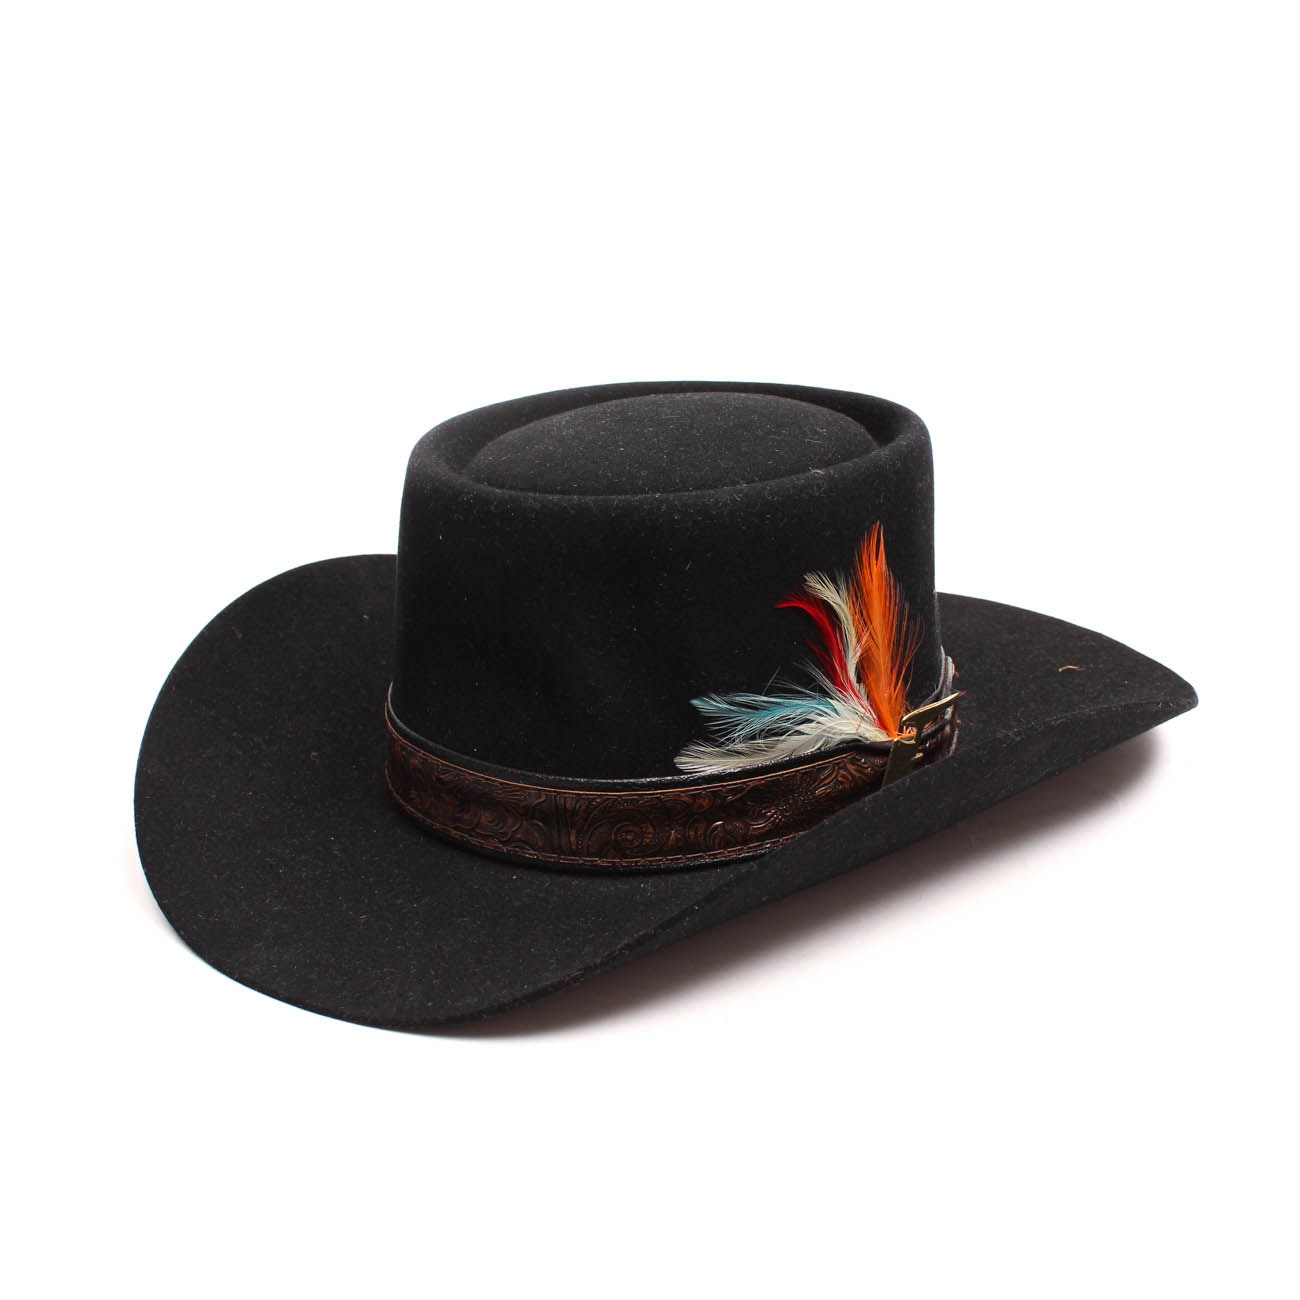 Men's Vintage Stetson 3X Beaver Fur Felted Hat with Tooled and Feather Hat Band